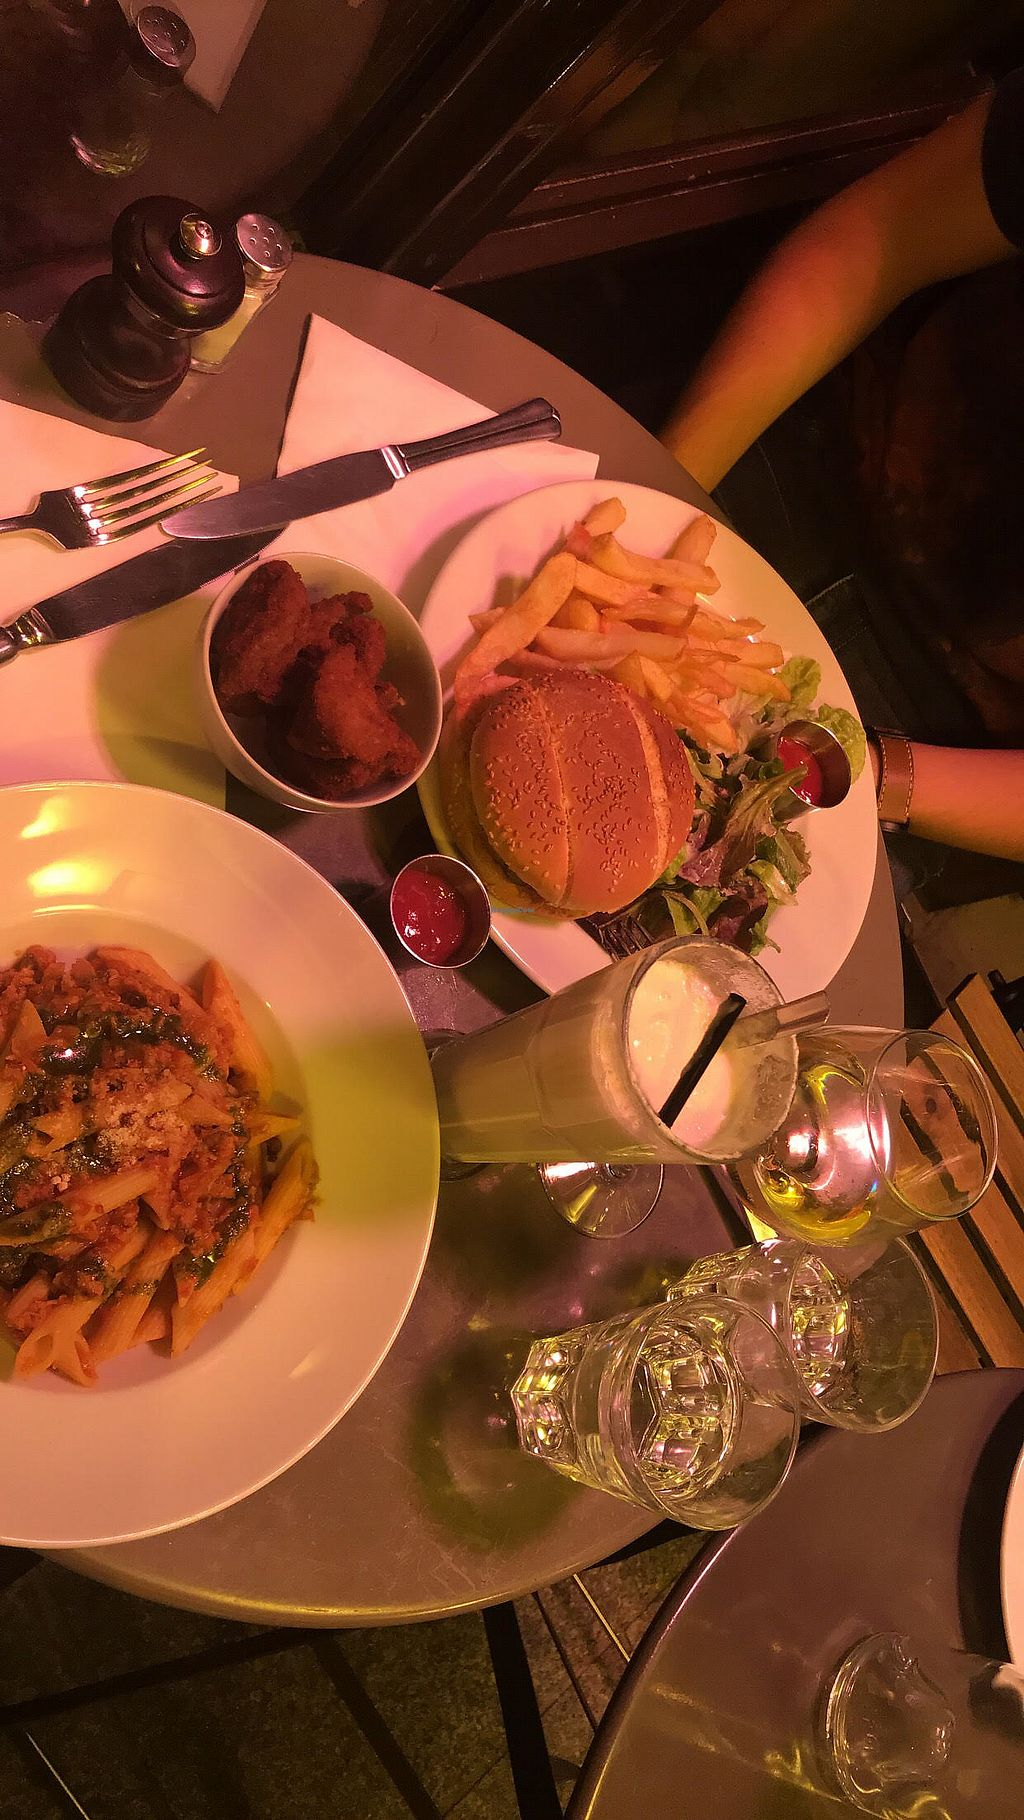 """Photo of Brasserie 2eme Art  by <a href=""""/members/profile/kipear"""">kipear</a> <br/>the vegan cheese burger, the penne Bolognese, chick'n nuggets and a pina colada!!!! all vegan and all amazing!!! the mock meats are incredible here <br/> October 14, 2017  - <a href='/contact/abuse/image/73690/314978'>Report</a>"""